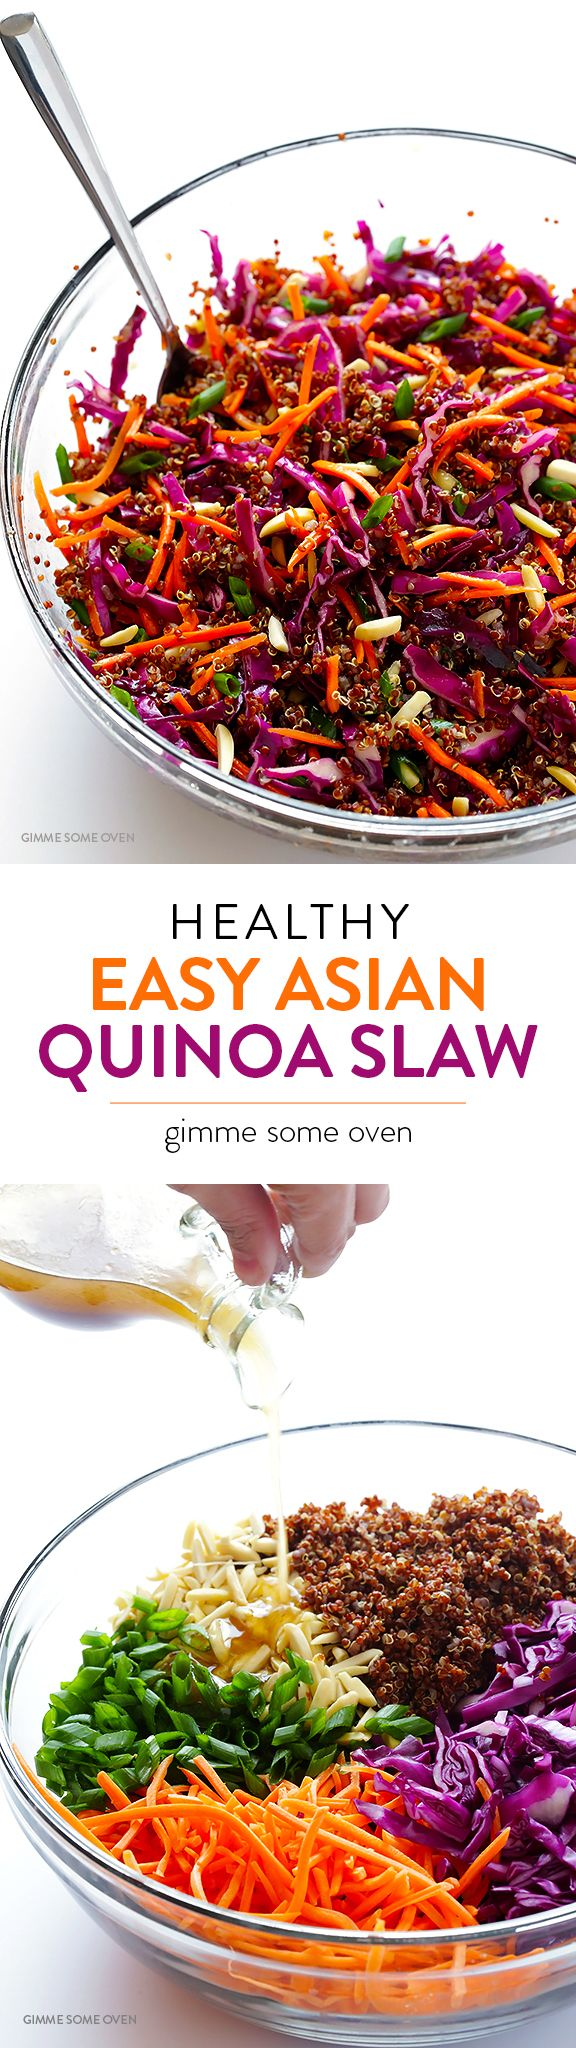 Quinoa   trainers Easy Asian Salad  mens Salad Slaw online and Asian Quinoa Quinoa Quinoa